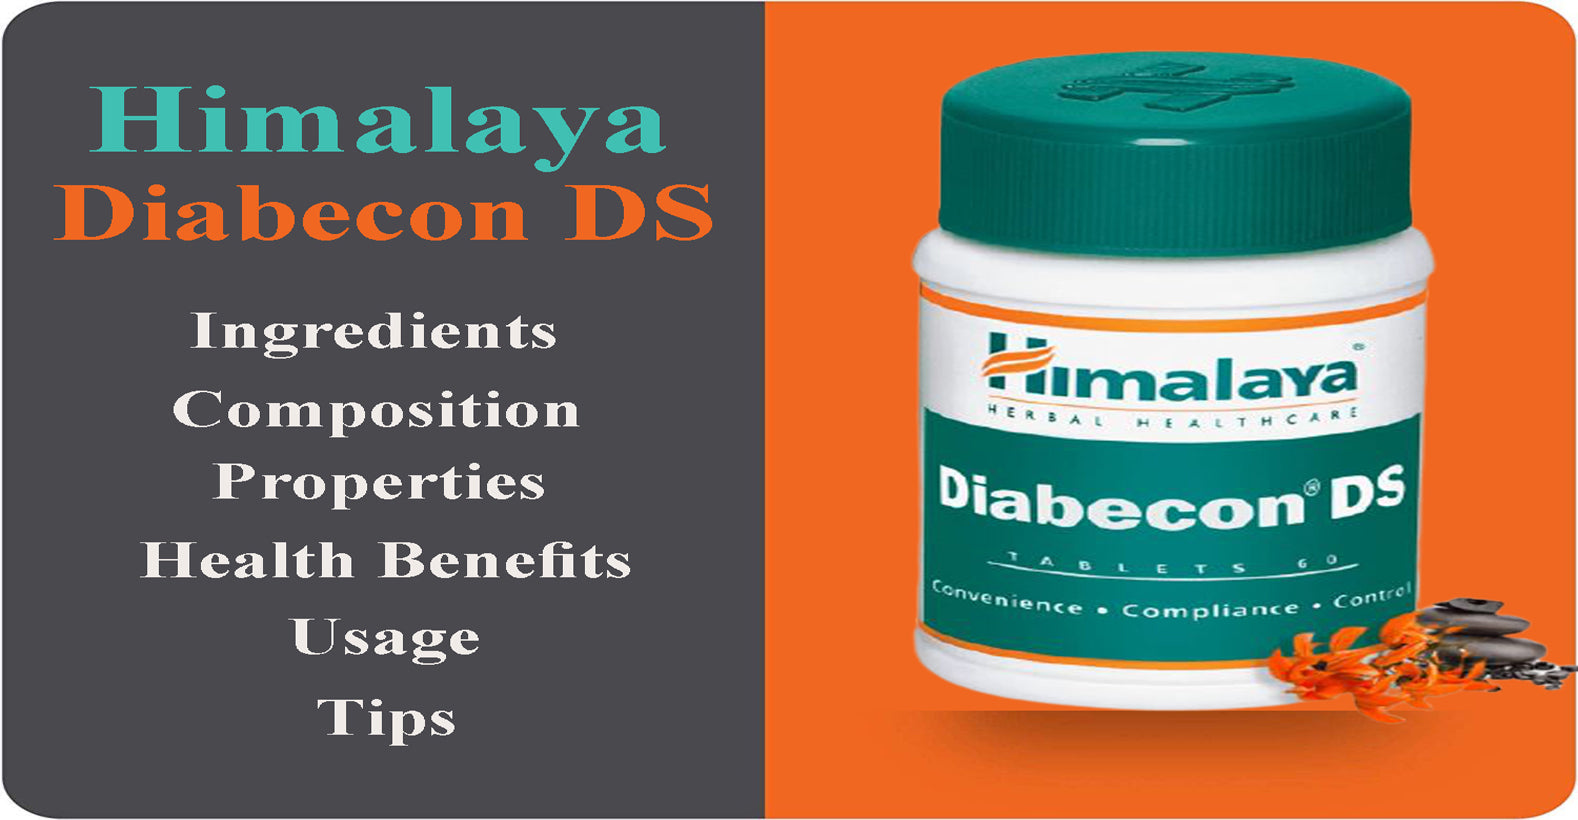 Himalaya Herbals - Diabecon (DS) Tablets - Ingredients, Composition, Properties, Health Benefits, Usage, Tips